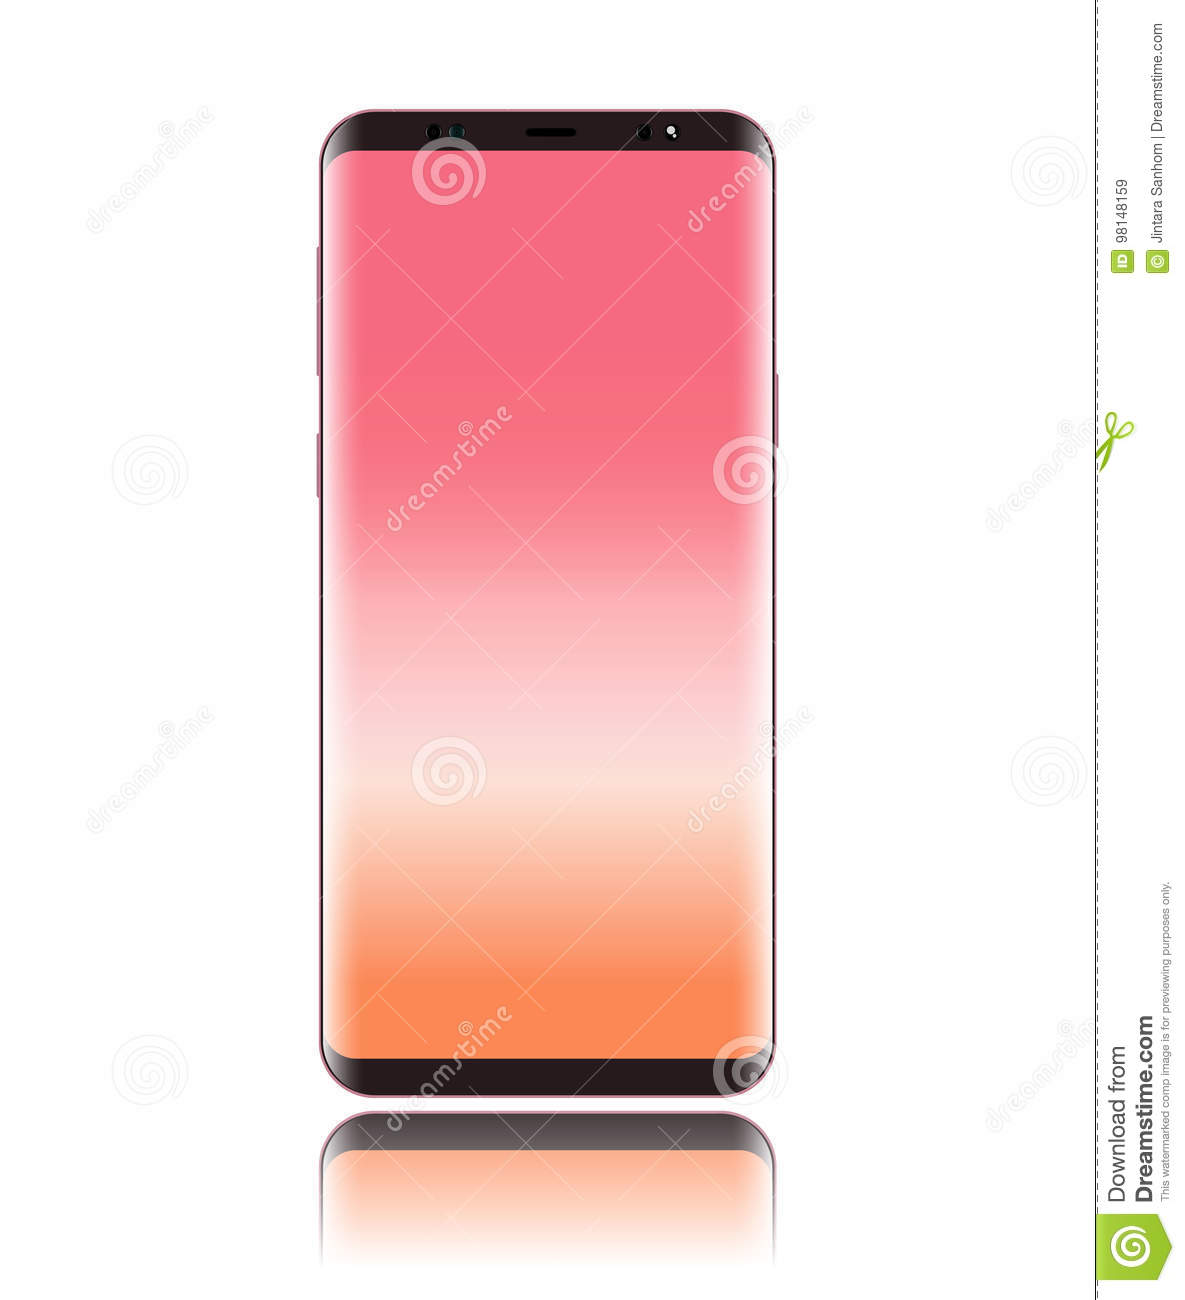 Smart phone vector with screen pink and body pink rose gold color isolated on white background